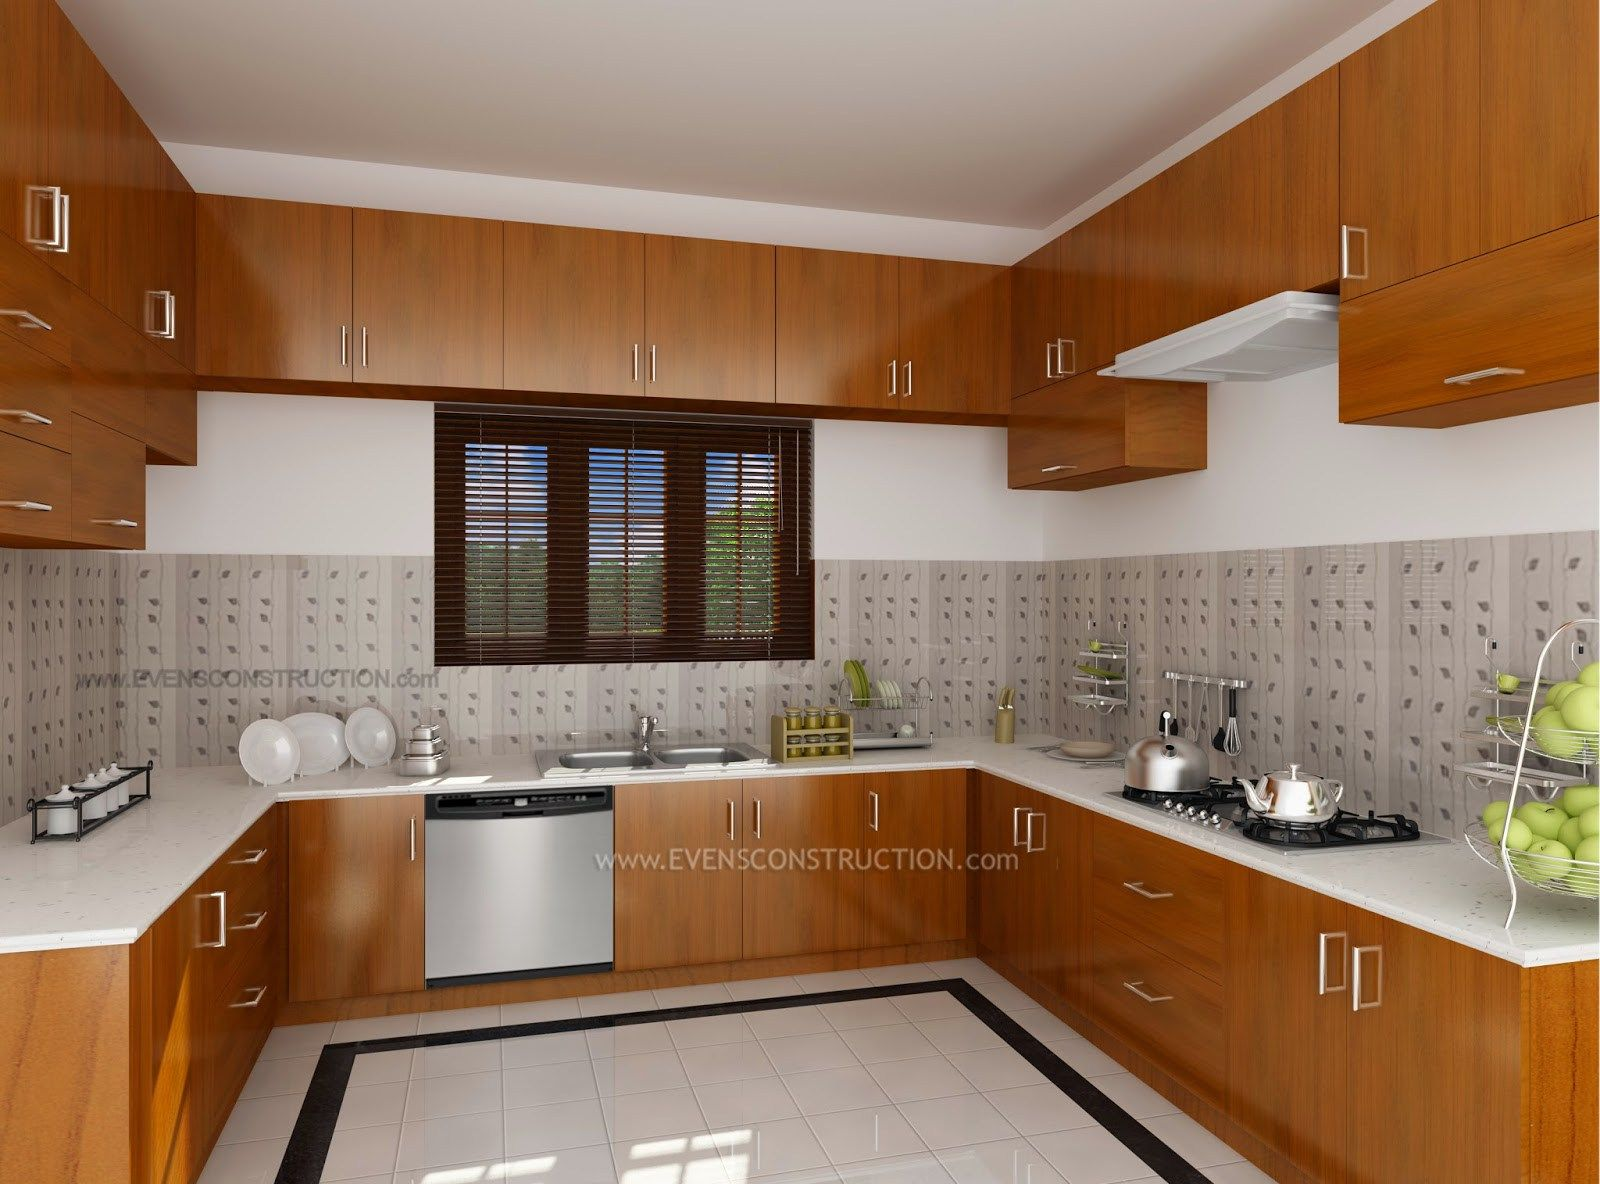 Design interior kitchen home kerala modern house kitchen kitchen dining  kitchen interior designs subin surendran architectsdesign interior kitchen home kerala modern house kitchen kitchen  . Latest Kitchen Designs In Kerala. Home Design Ideas